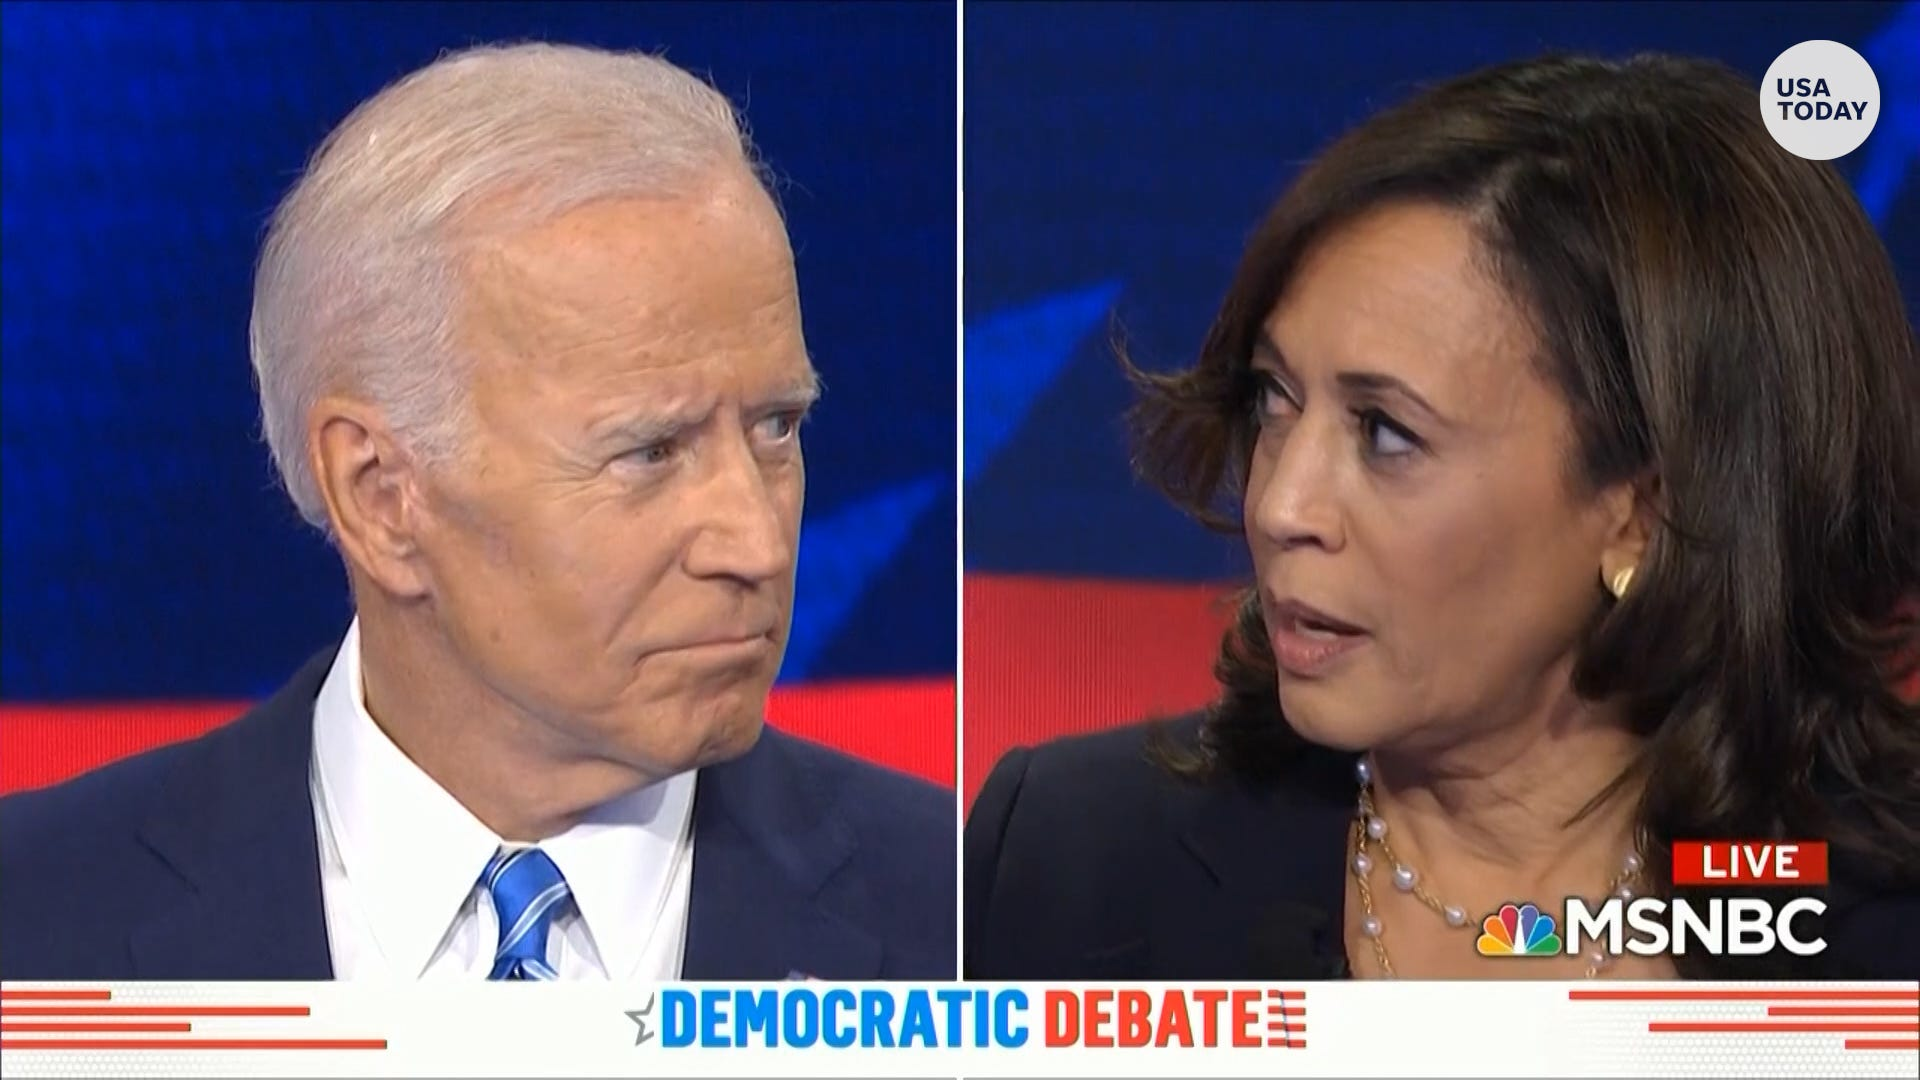 Democratic debate 2019: night two defined by direct exchanges, but Harris  and Biden most